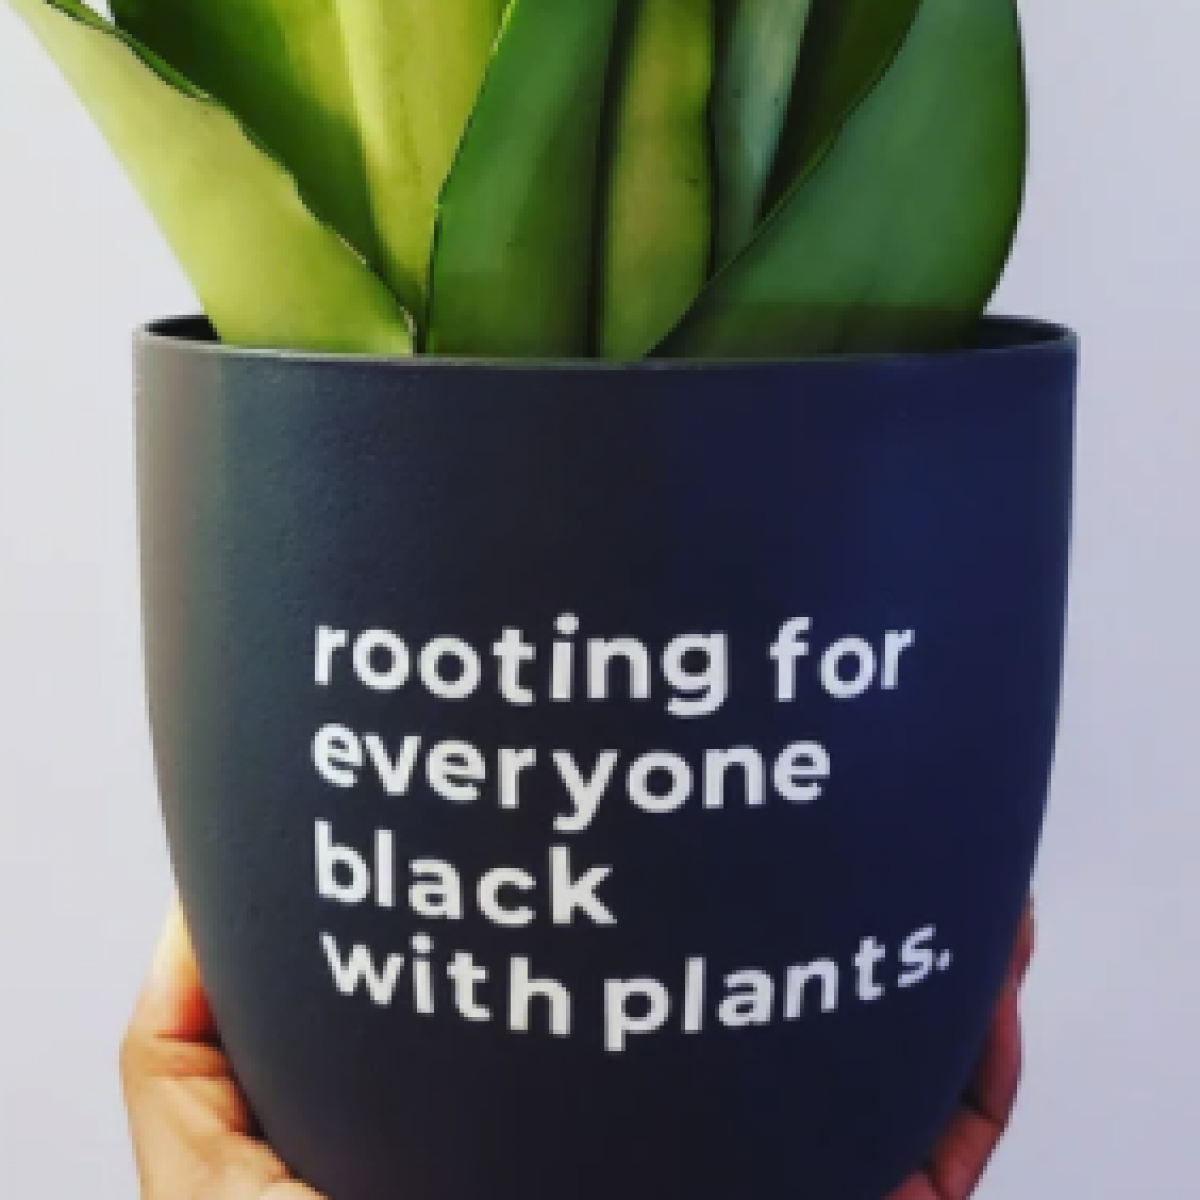 21 Sources For Black-Owned Plants and Products For Plant Lovers